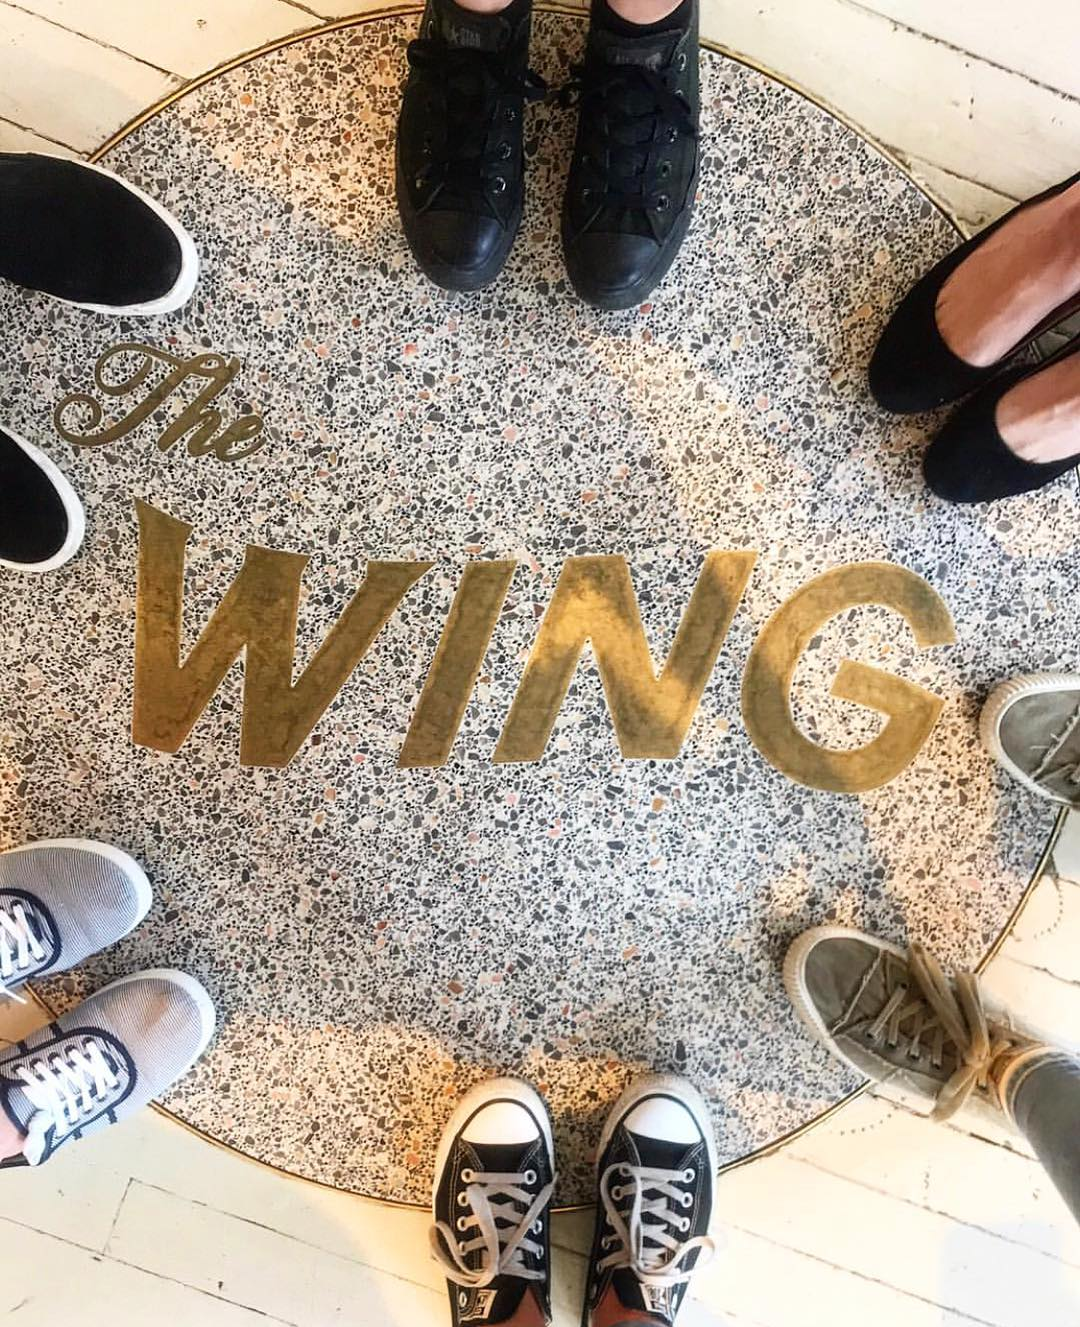 The Wing, San Francisco